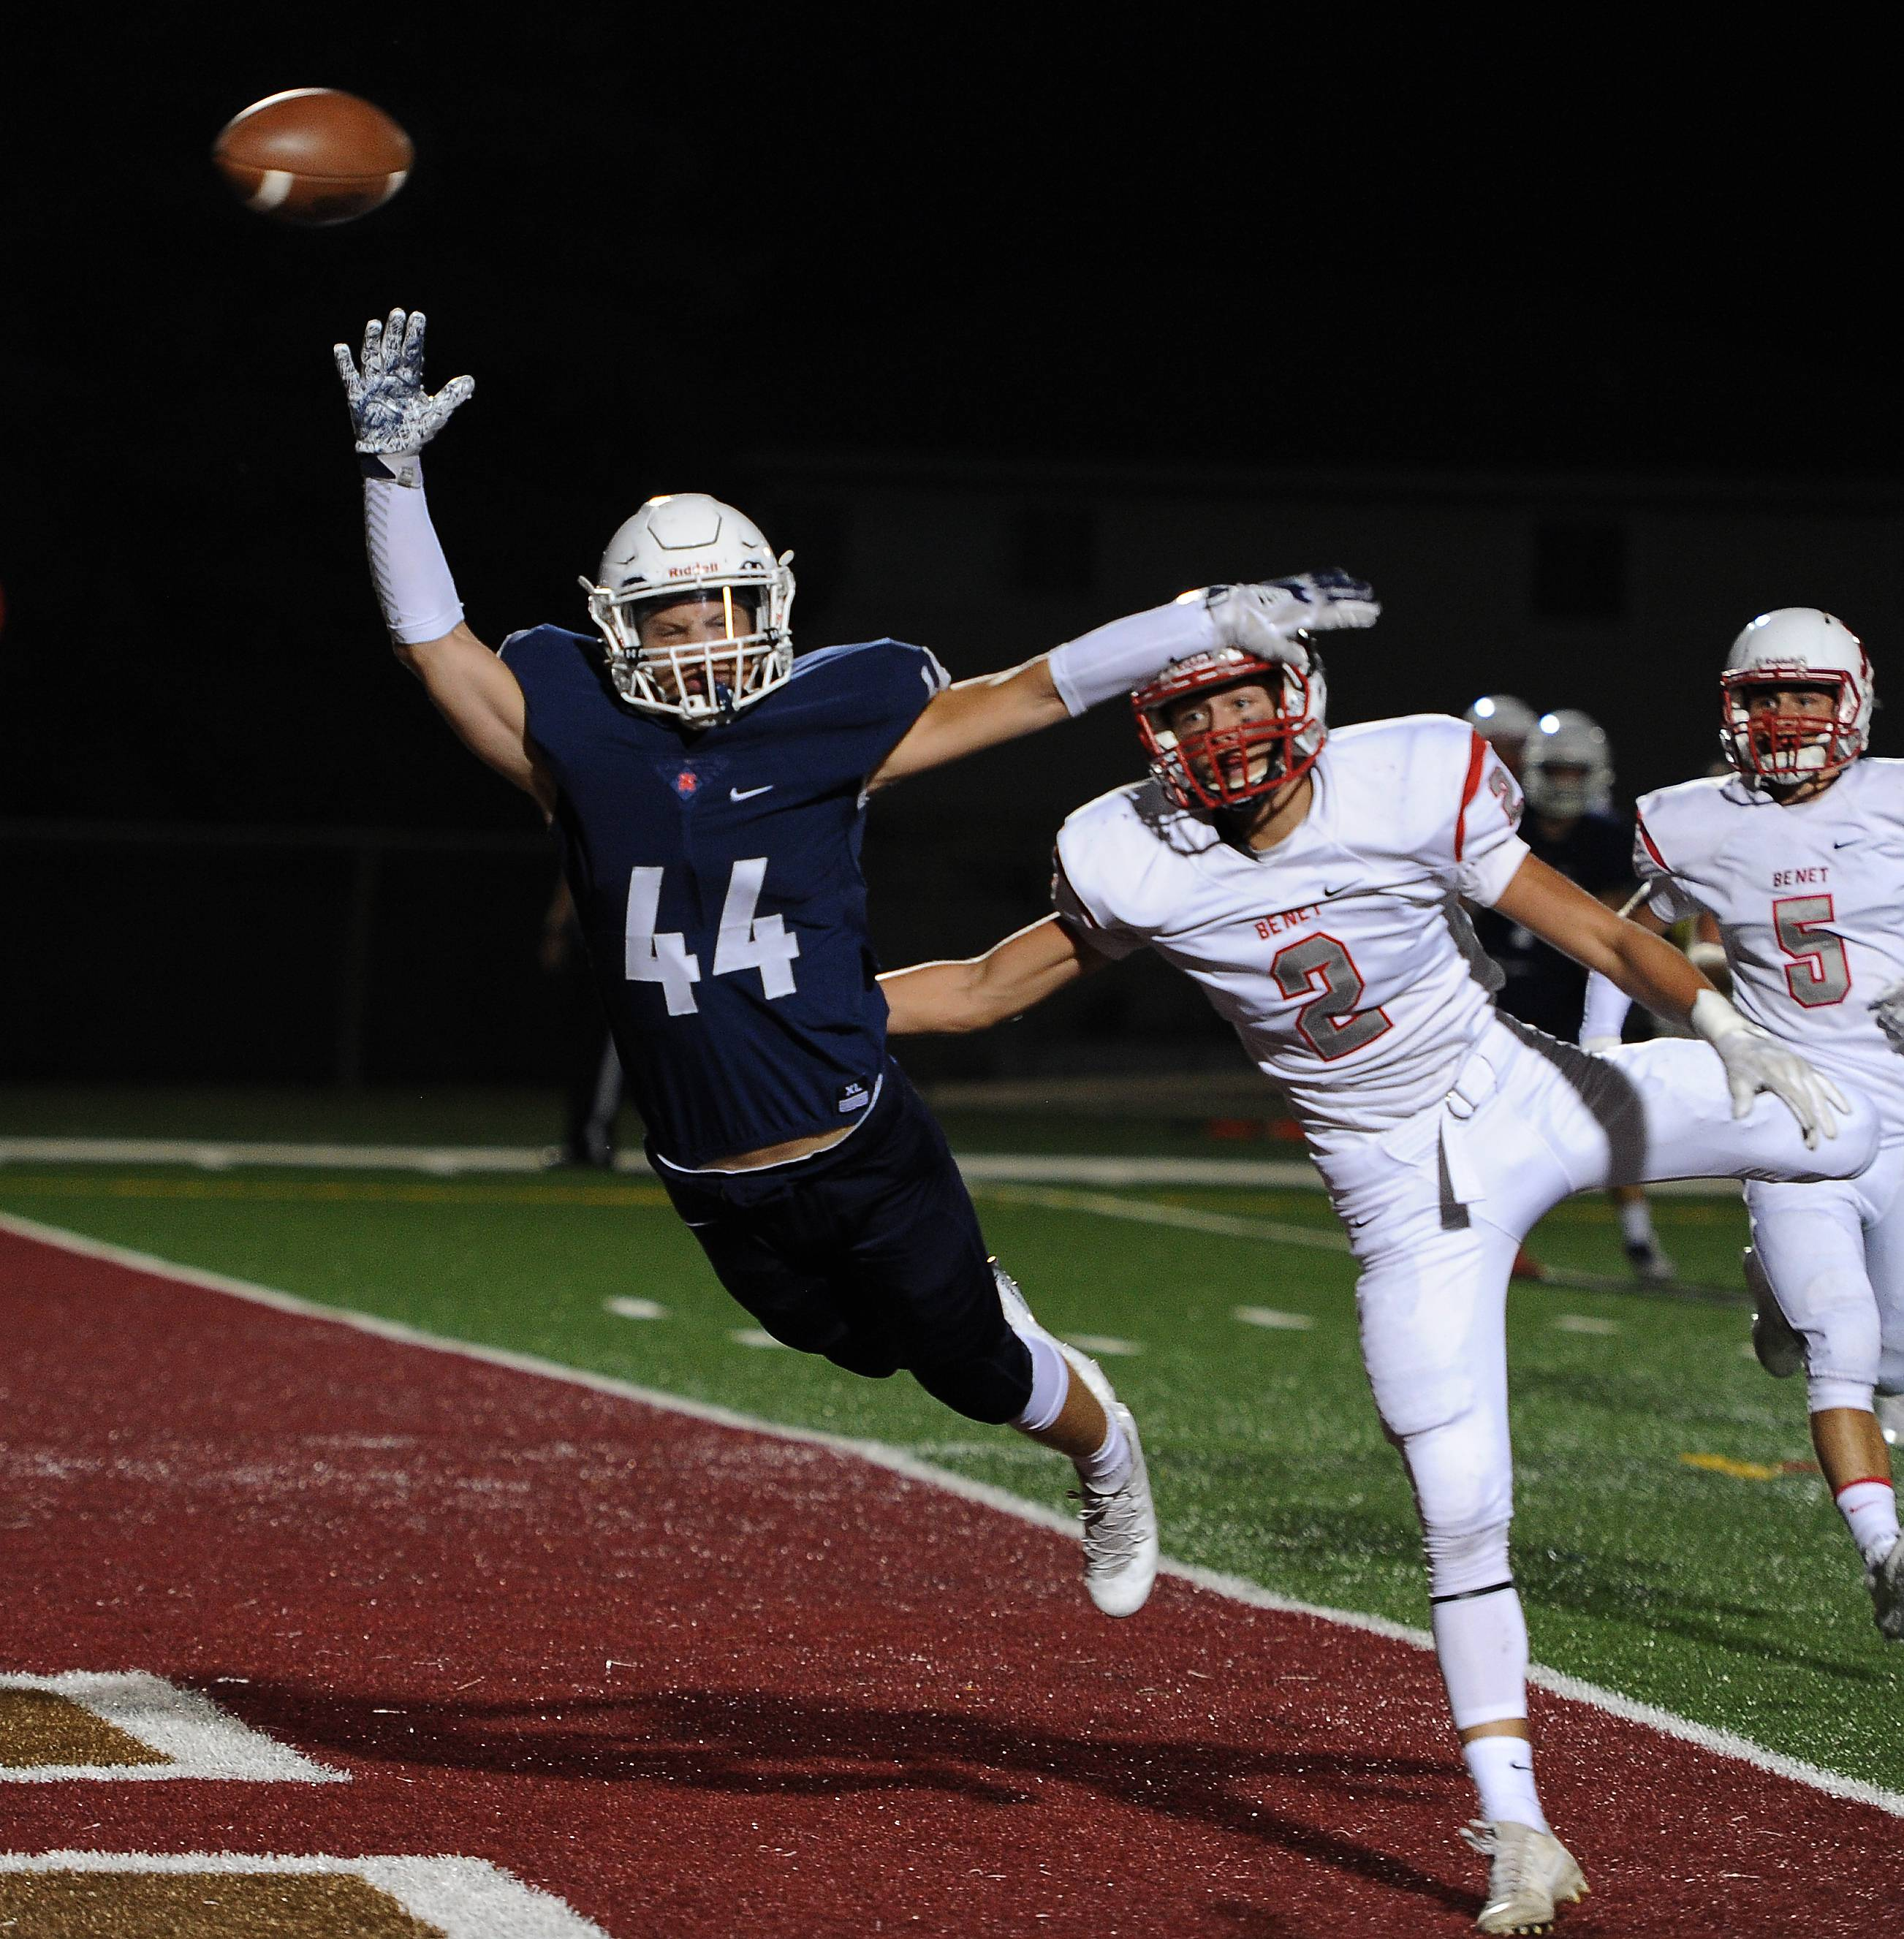 St. Viator's Michael Wittich tries to haul in a first-quarter pass play in the end zone but falls short as Benet Academy's Jack Cooney defends during the first half Friday in Arlington Heights.